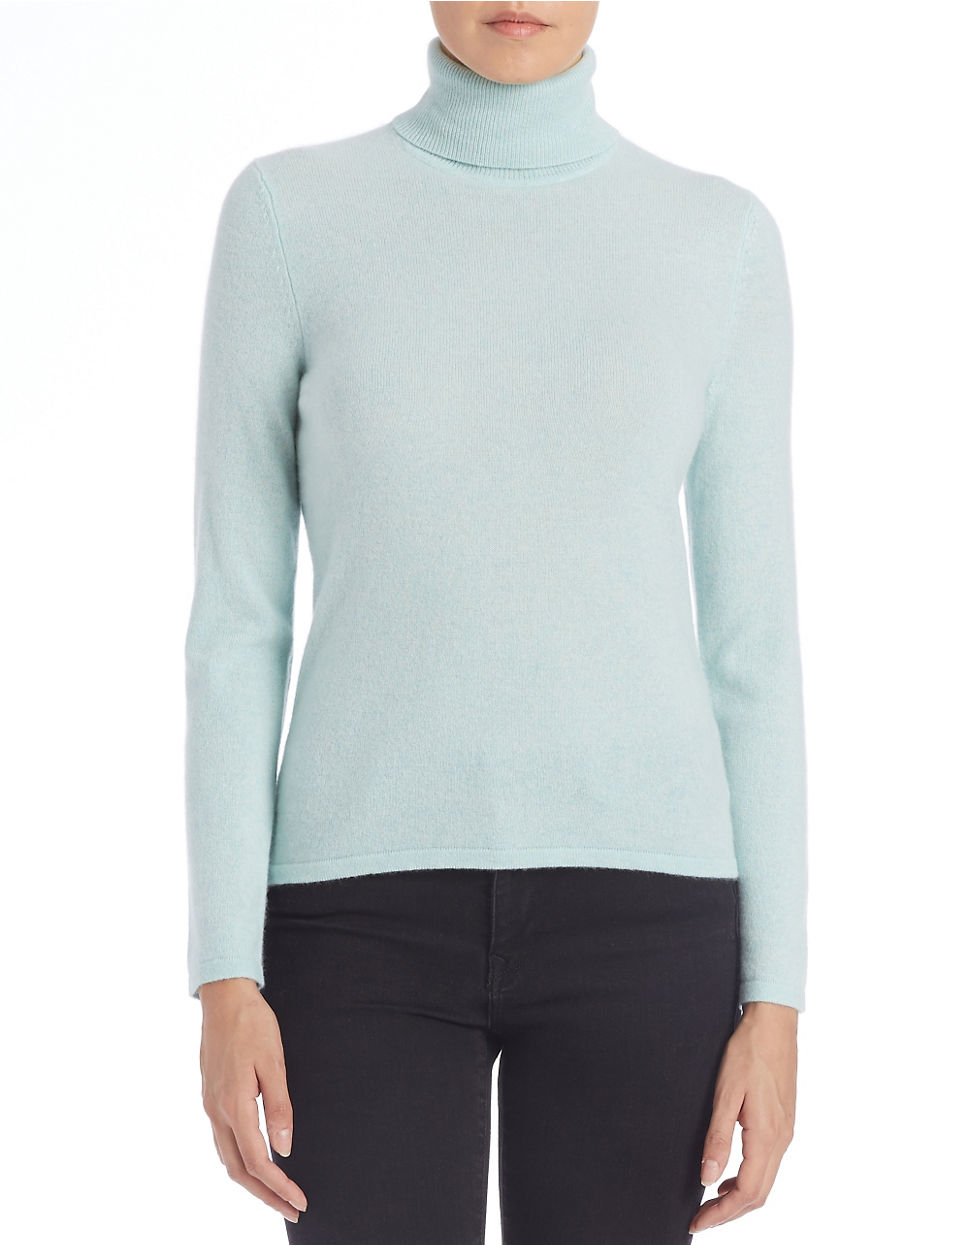 Lord & taylor Cashmere Turtleneck Sweater | Lyst